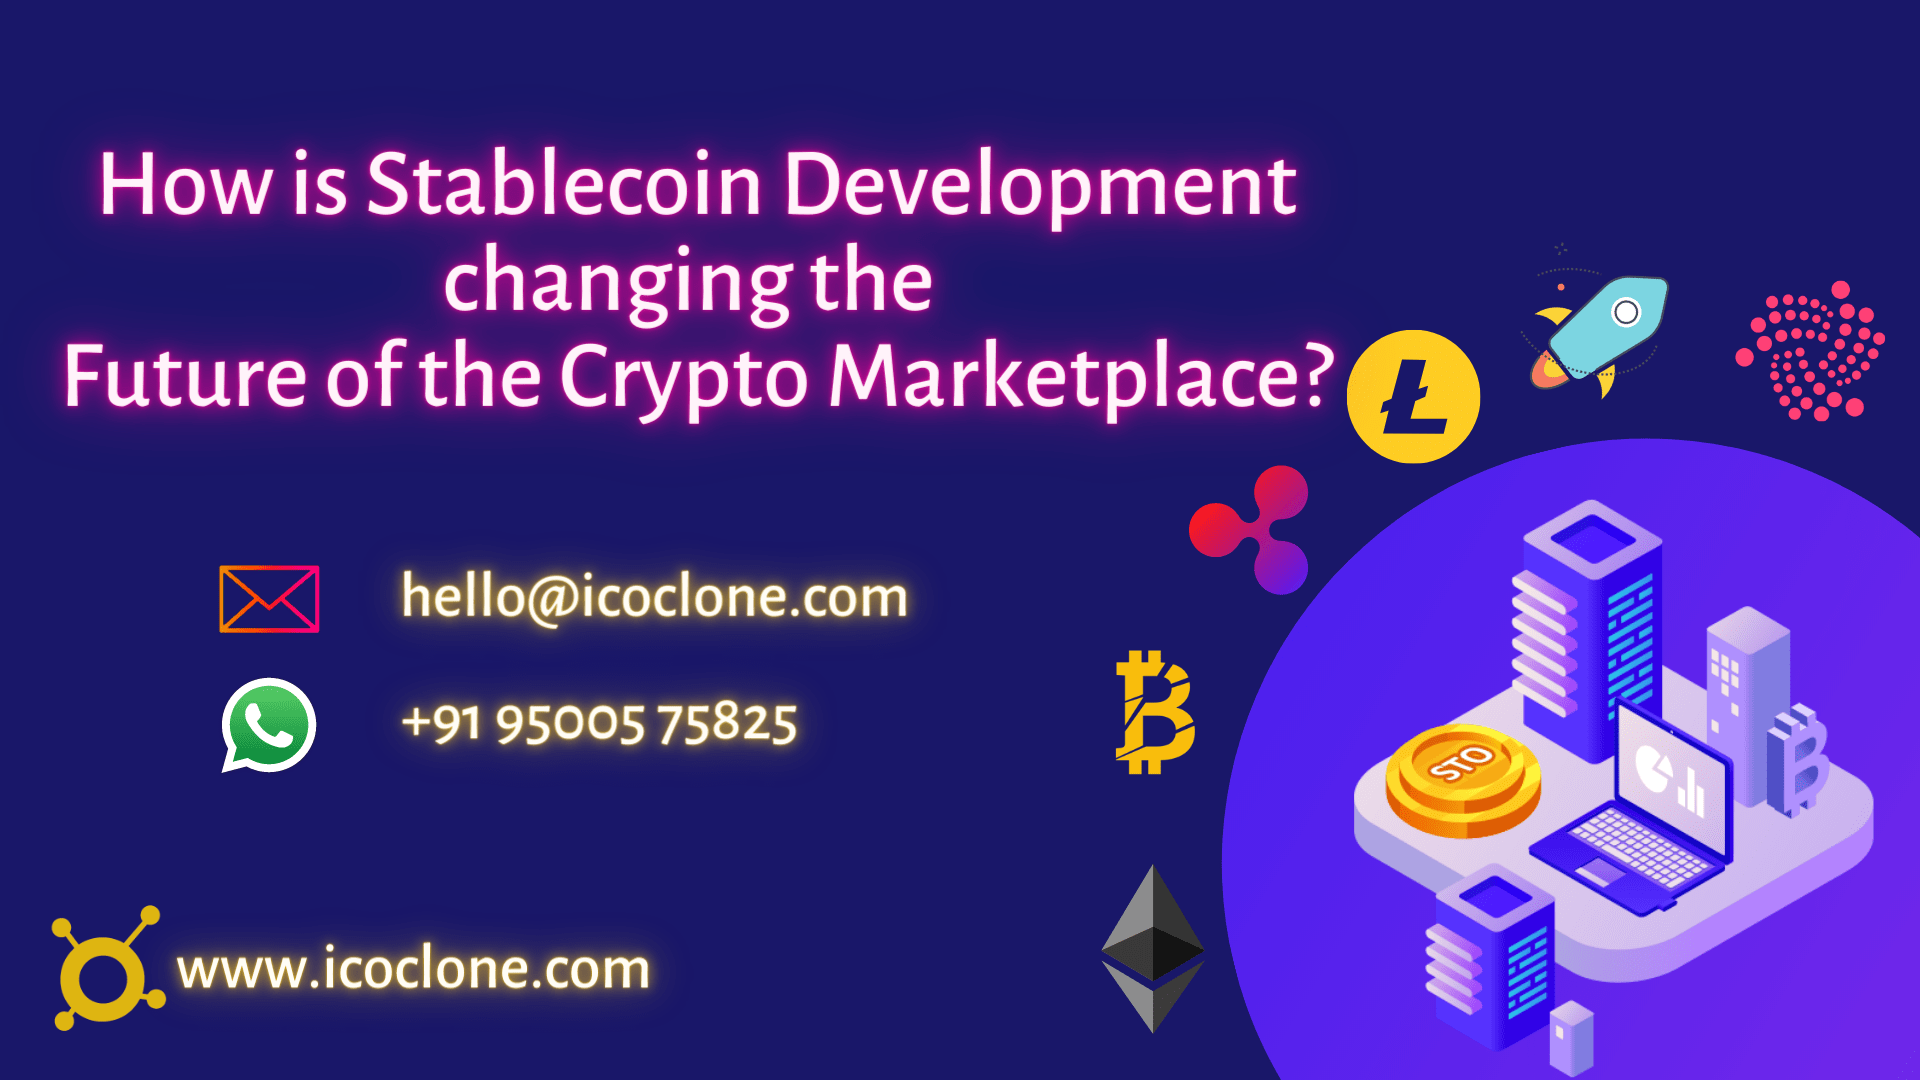 How is Stablecoin Development changing the Future of the Crypto Marketplace?